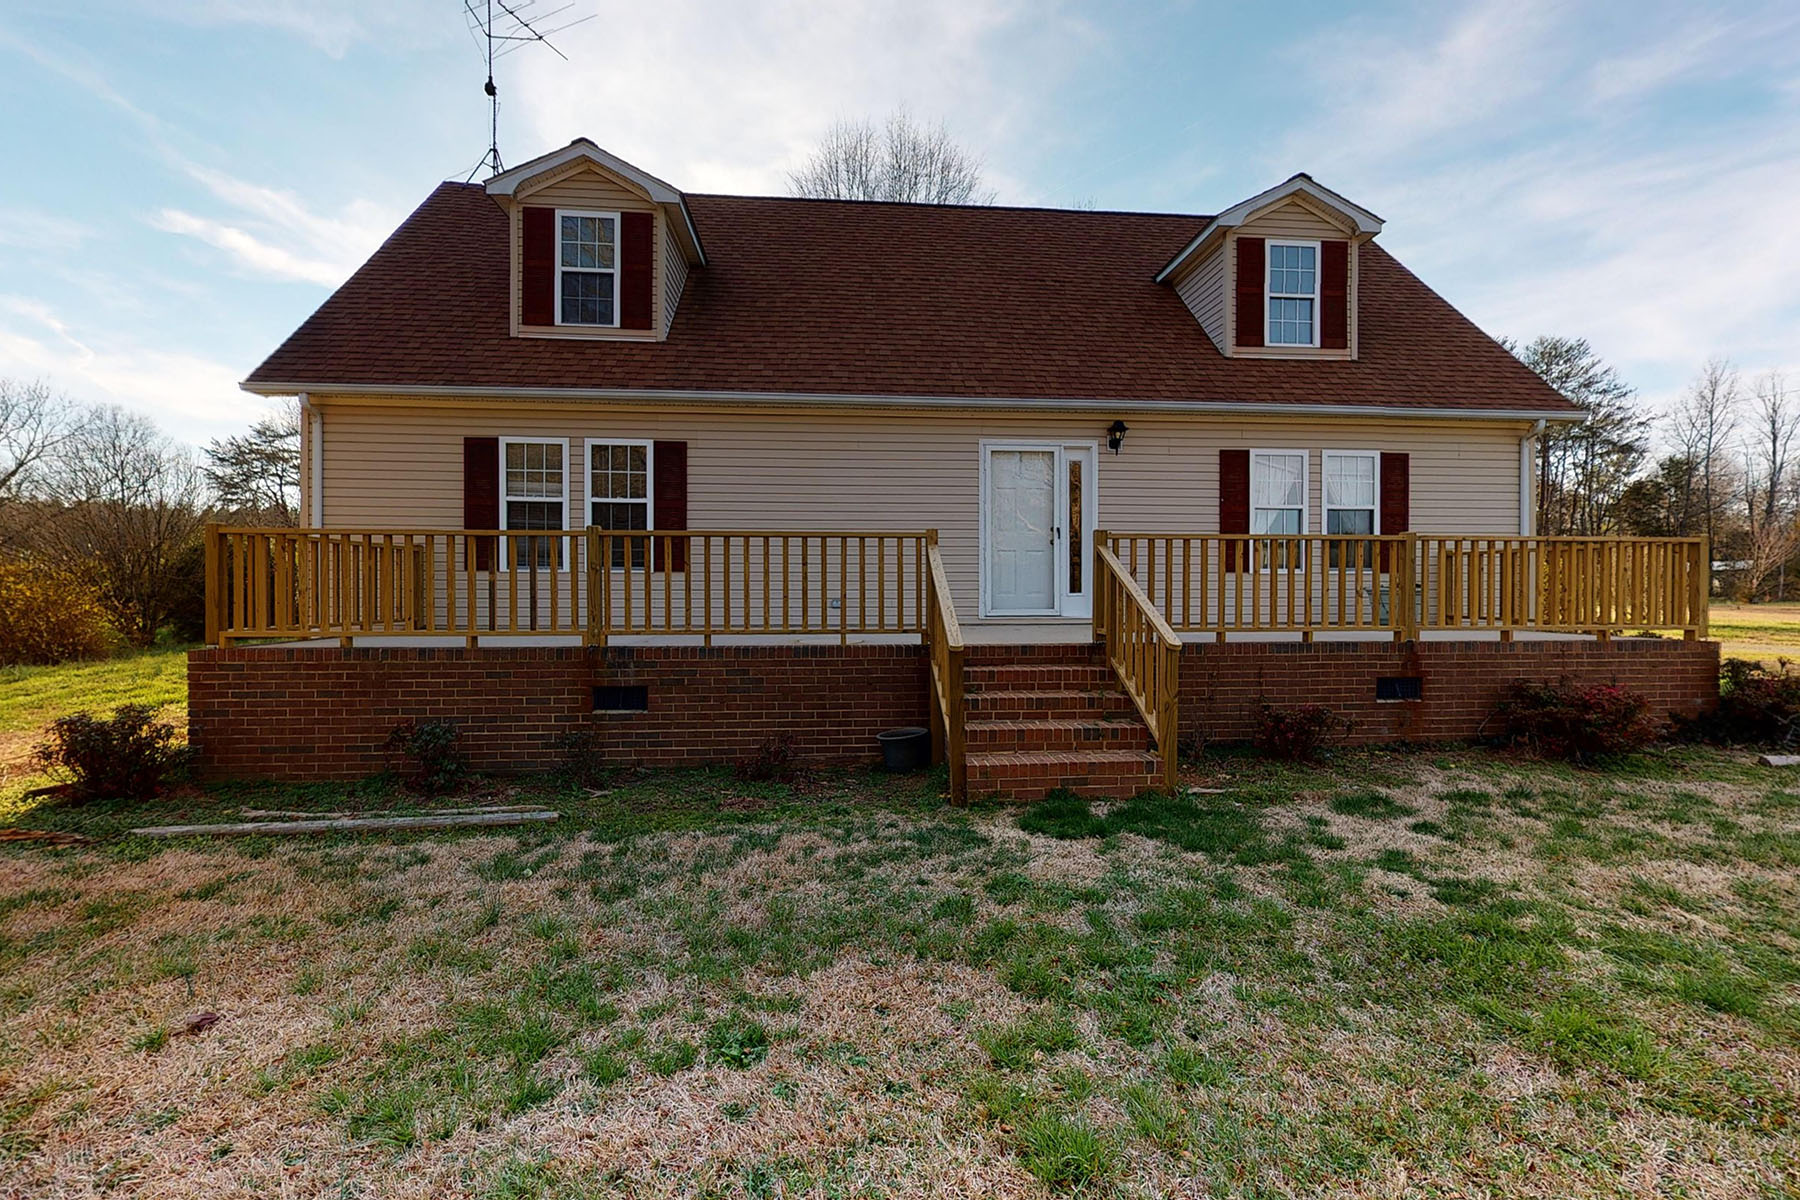 Single Family Homes for Sale at 4345 Nc Highway 109 Hwy Troy, North Carolina 27371 United States